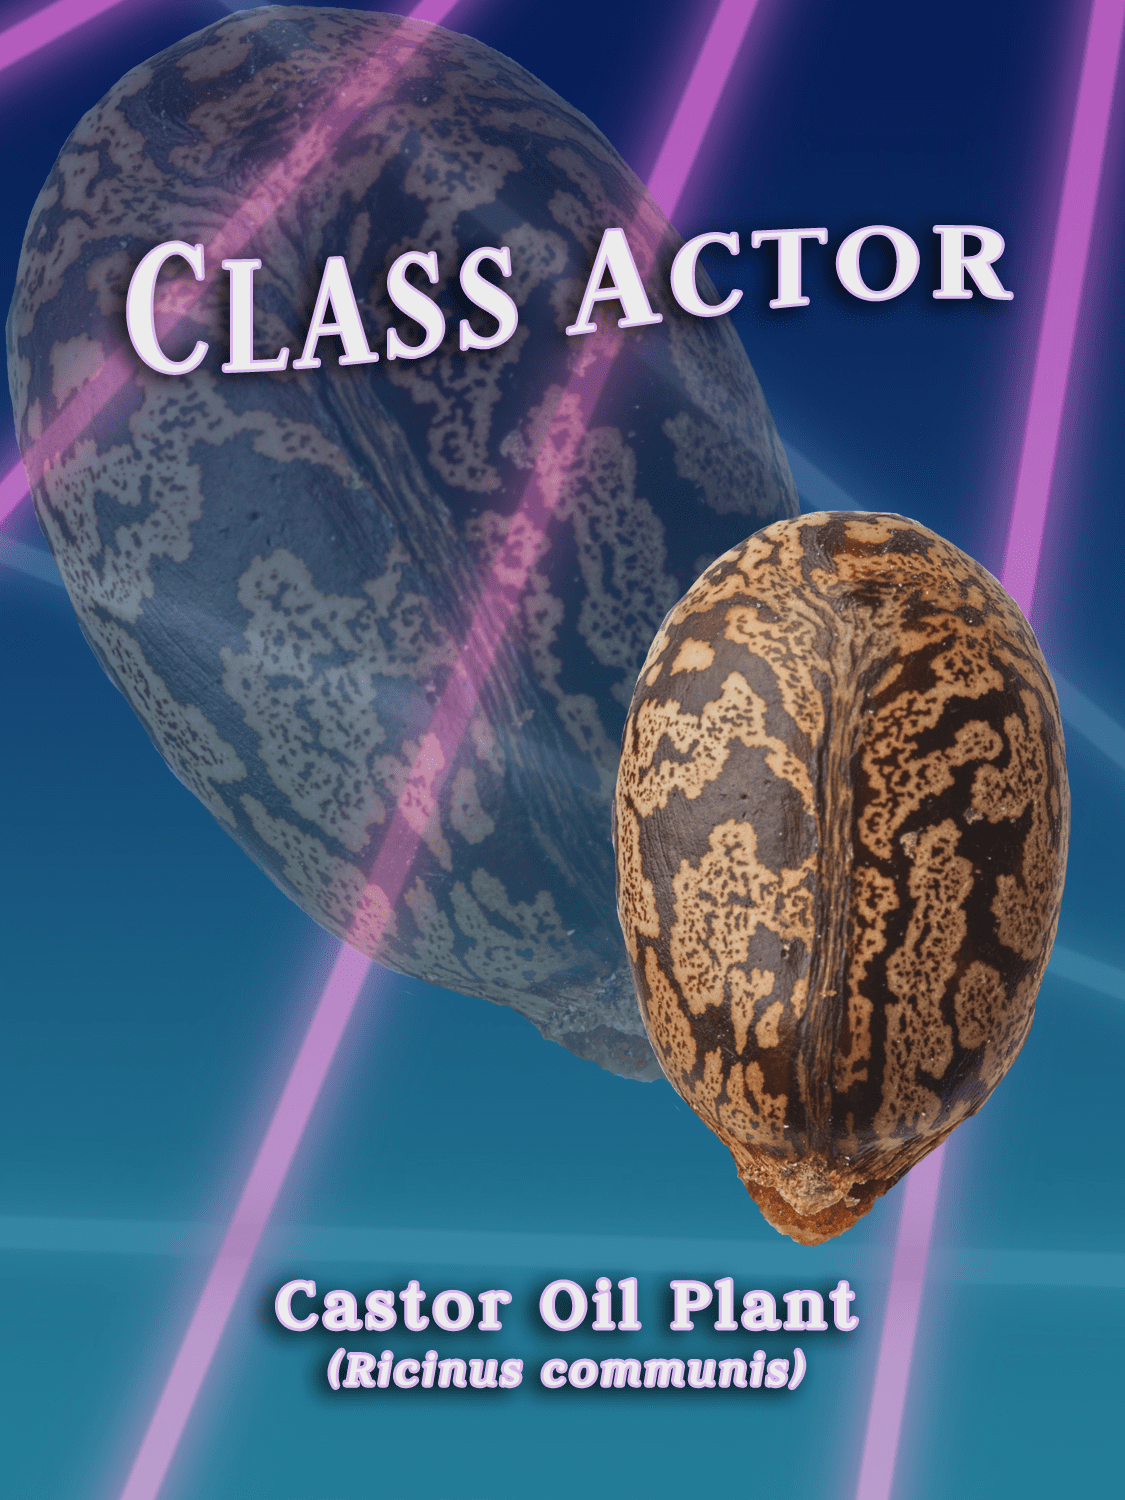 yearbook style portrait with 80s laser background of a castor oil seed.